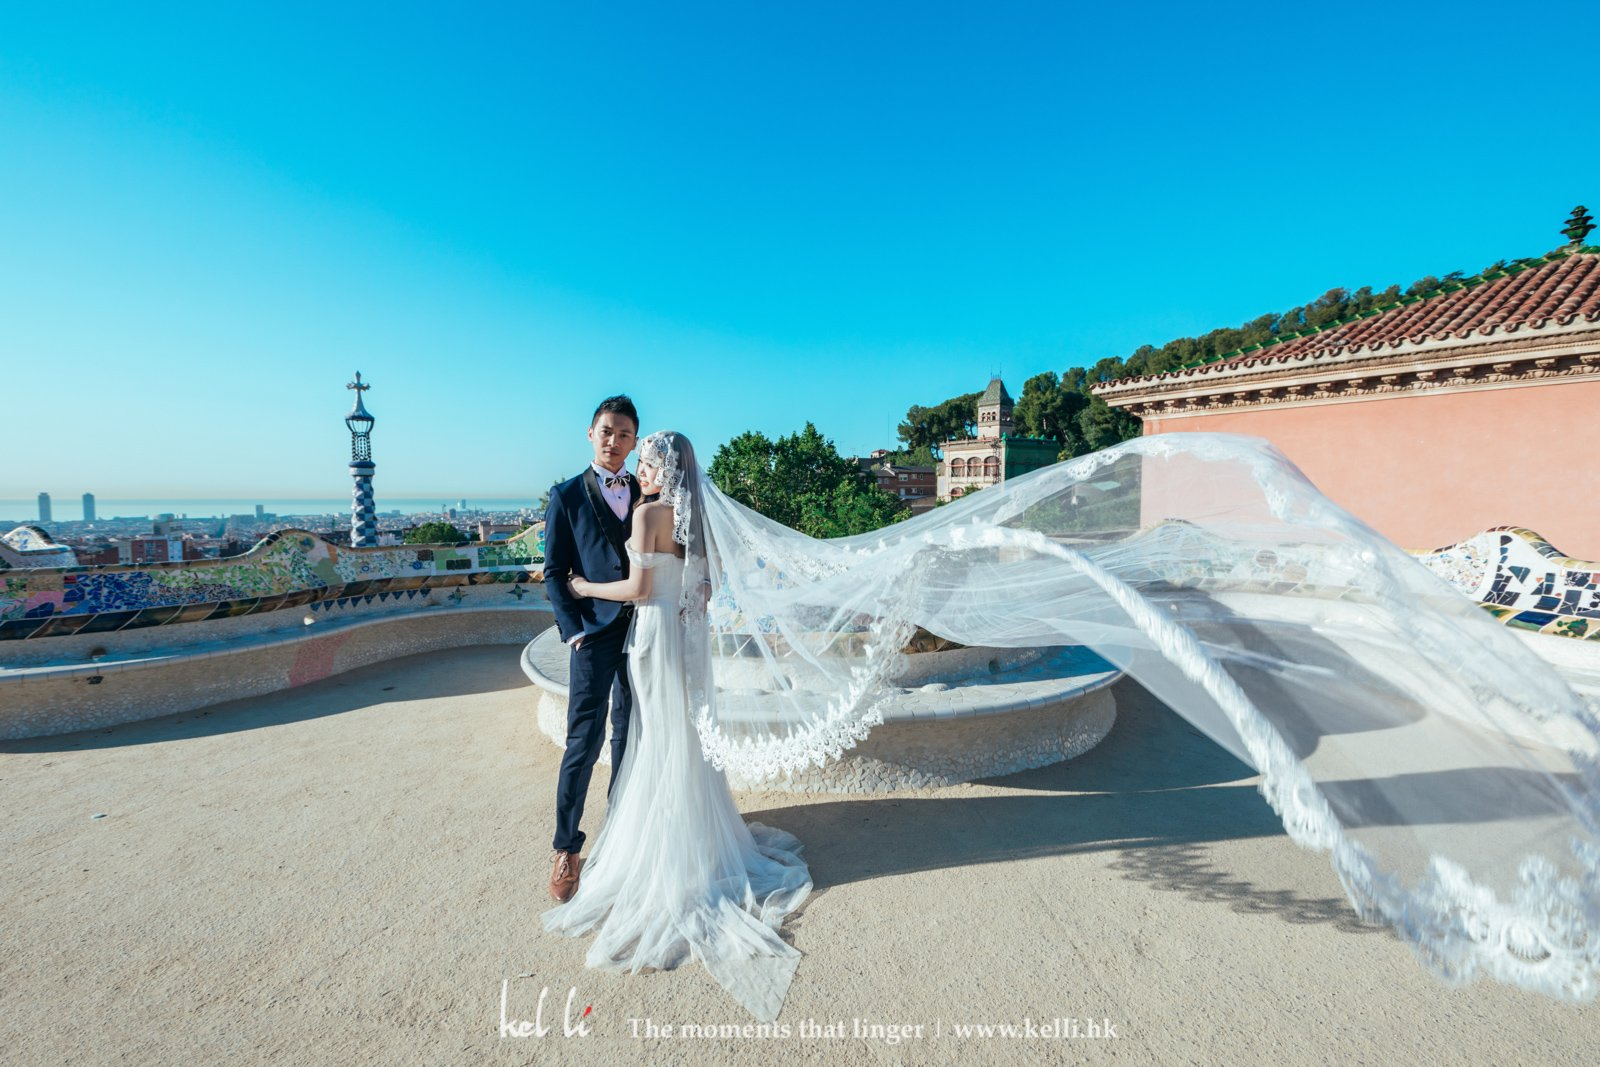 Prewedding in Park Guell